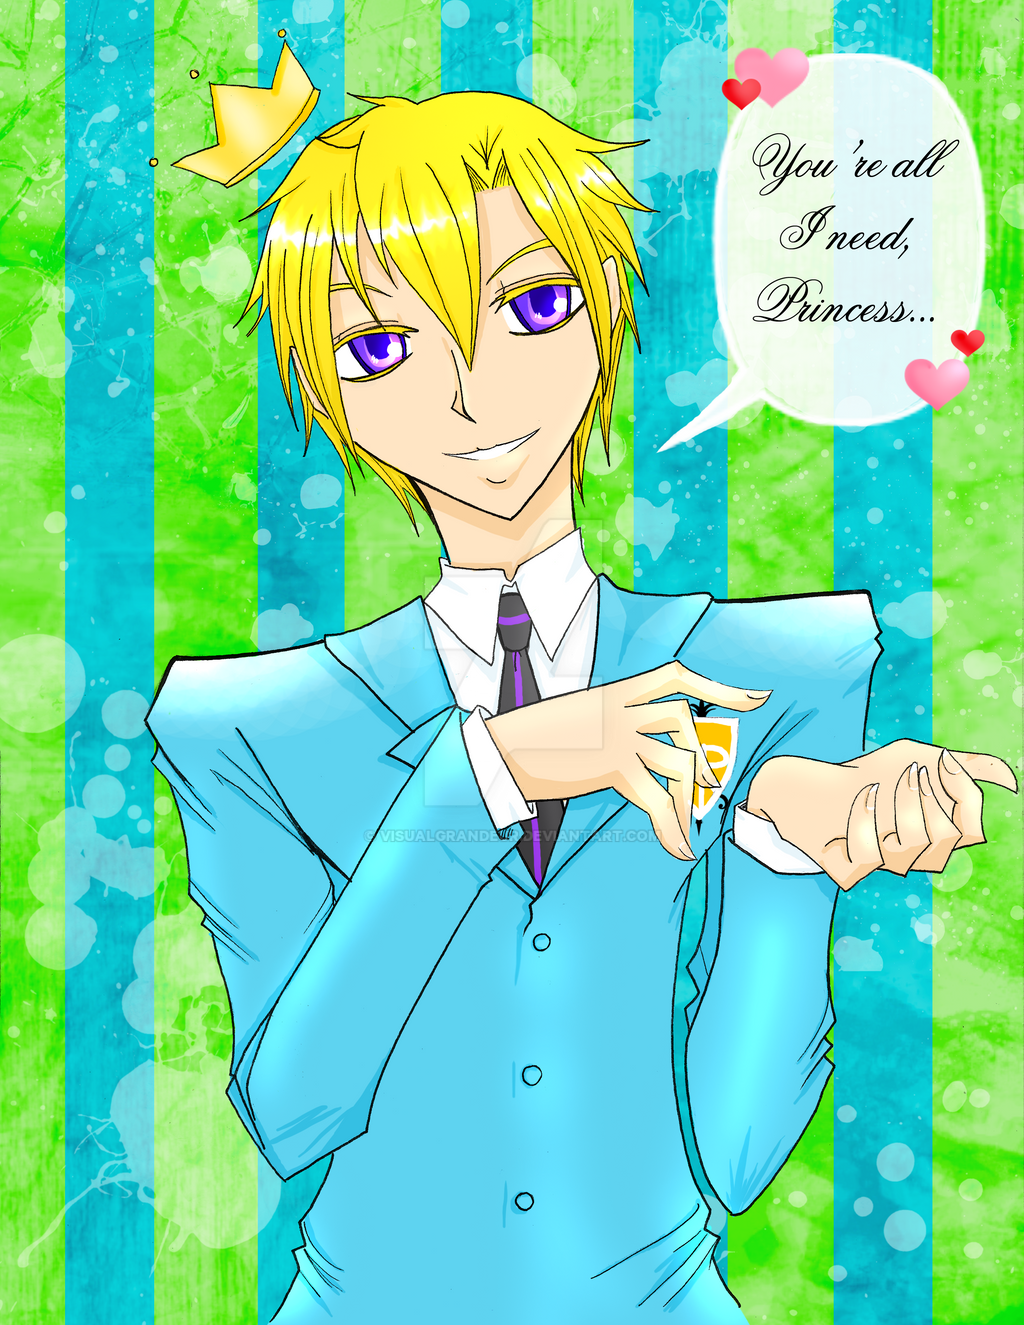 Ouran Prince by visualgrandeur